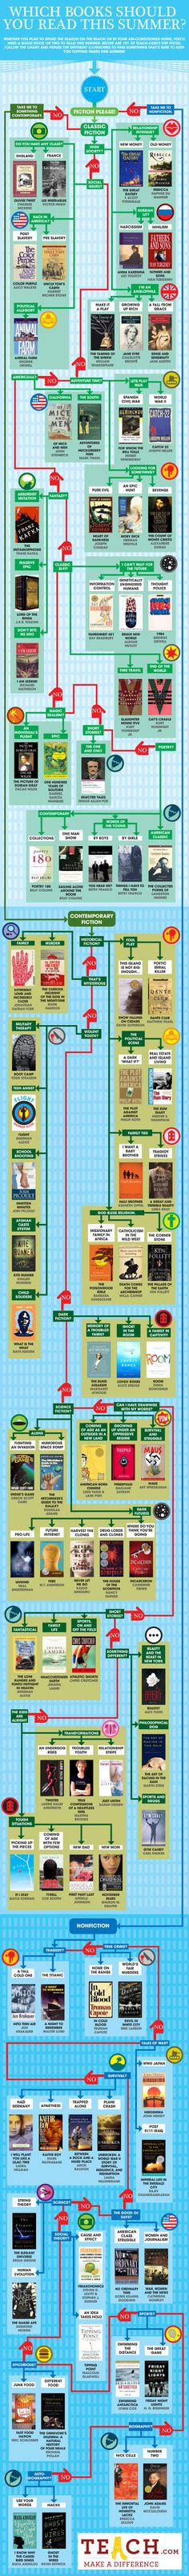 Daily Infographic | What to read this summer....